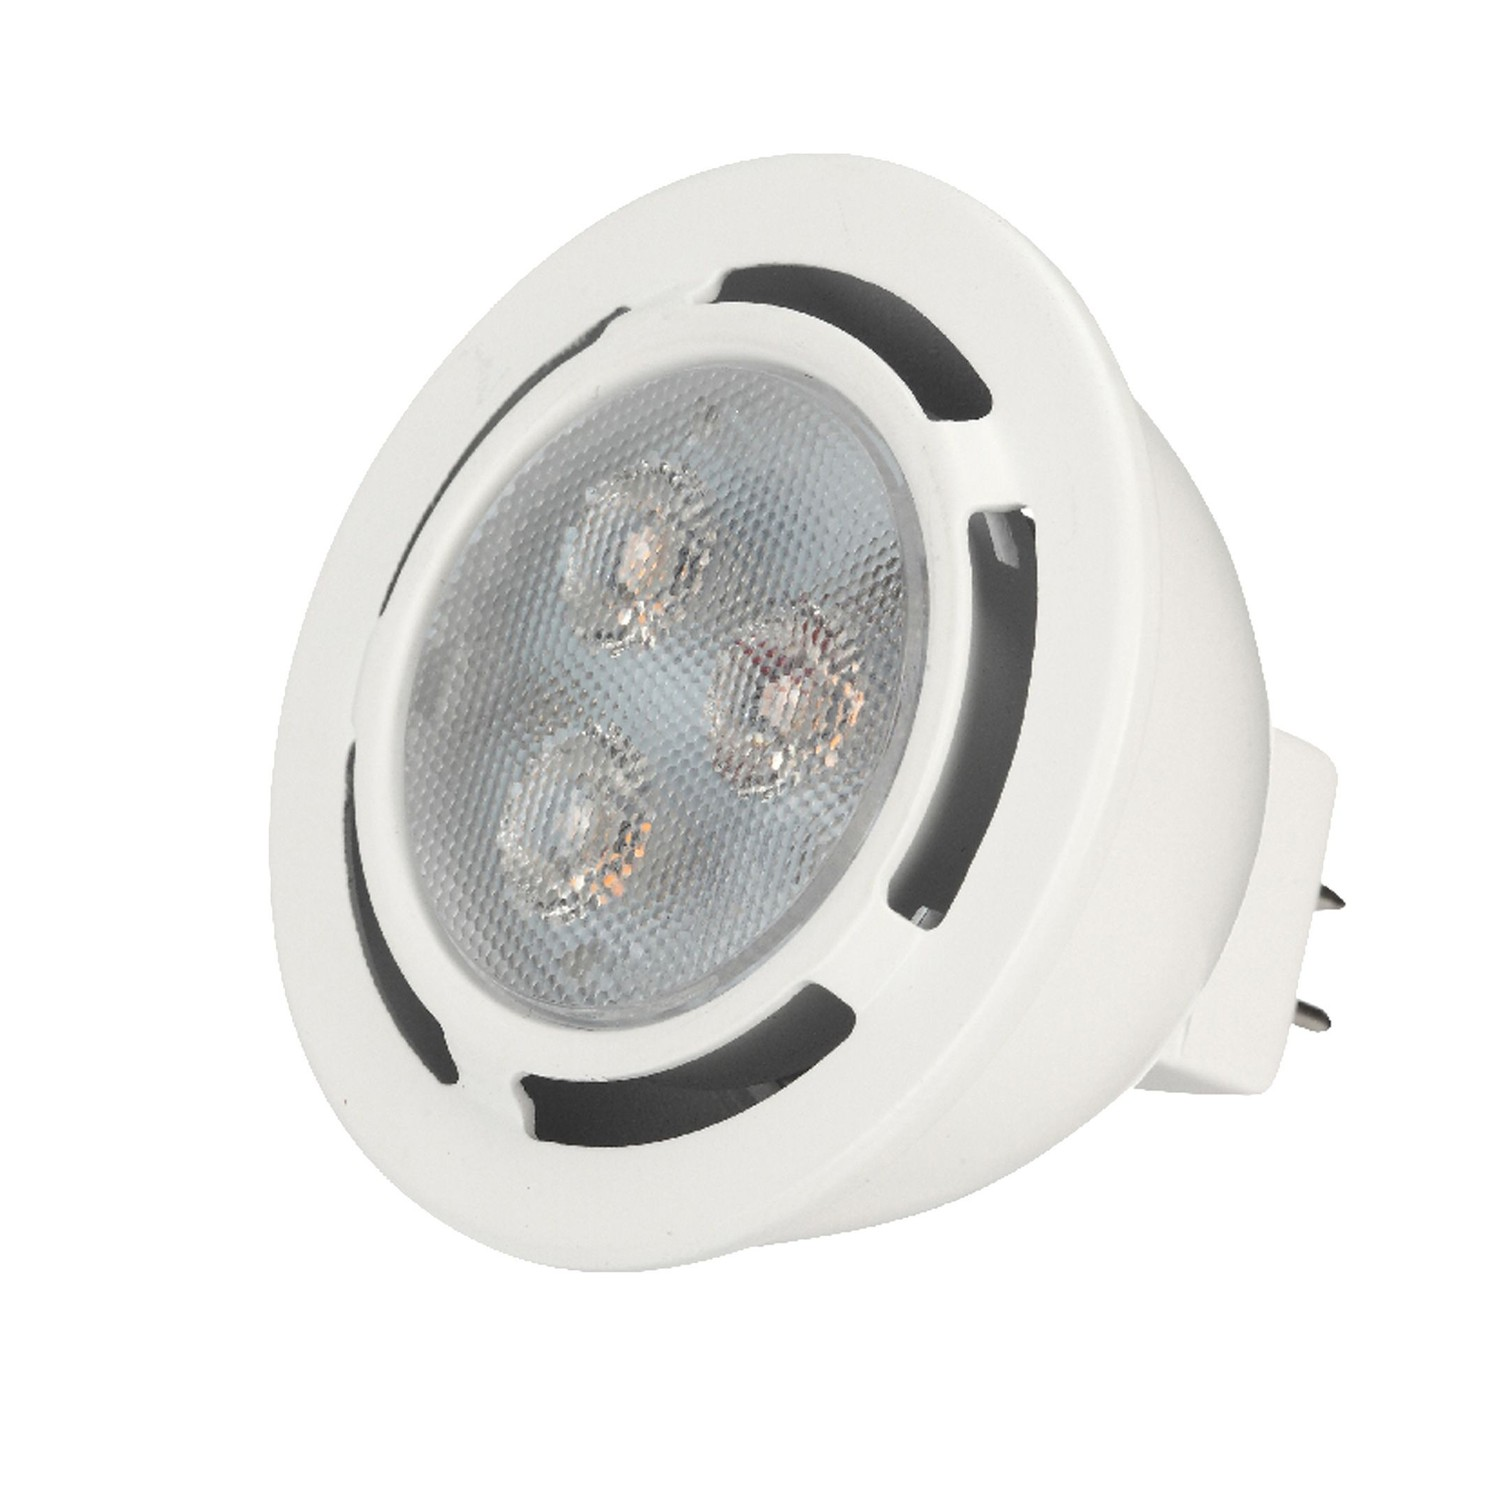 LED Spot Opple GU5.3 7W Warm Wit